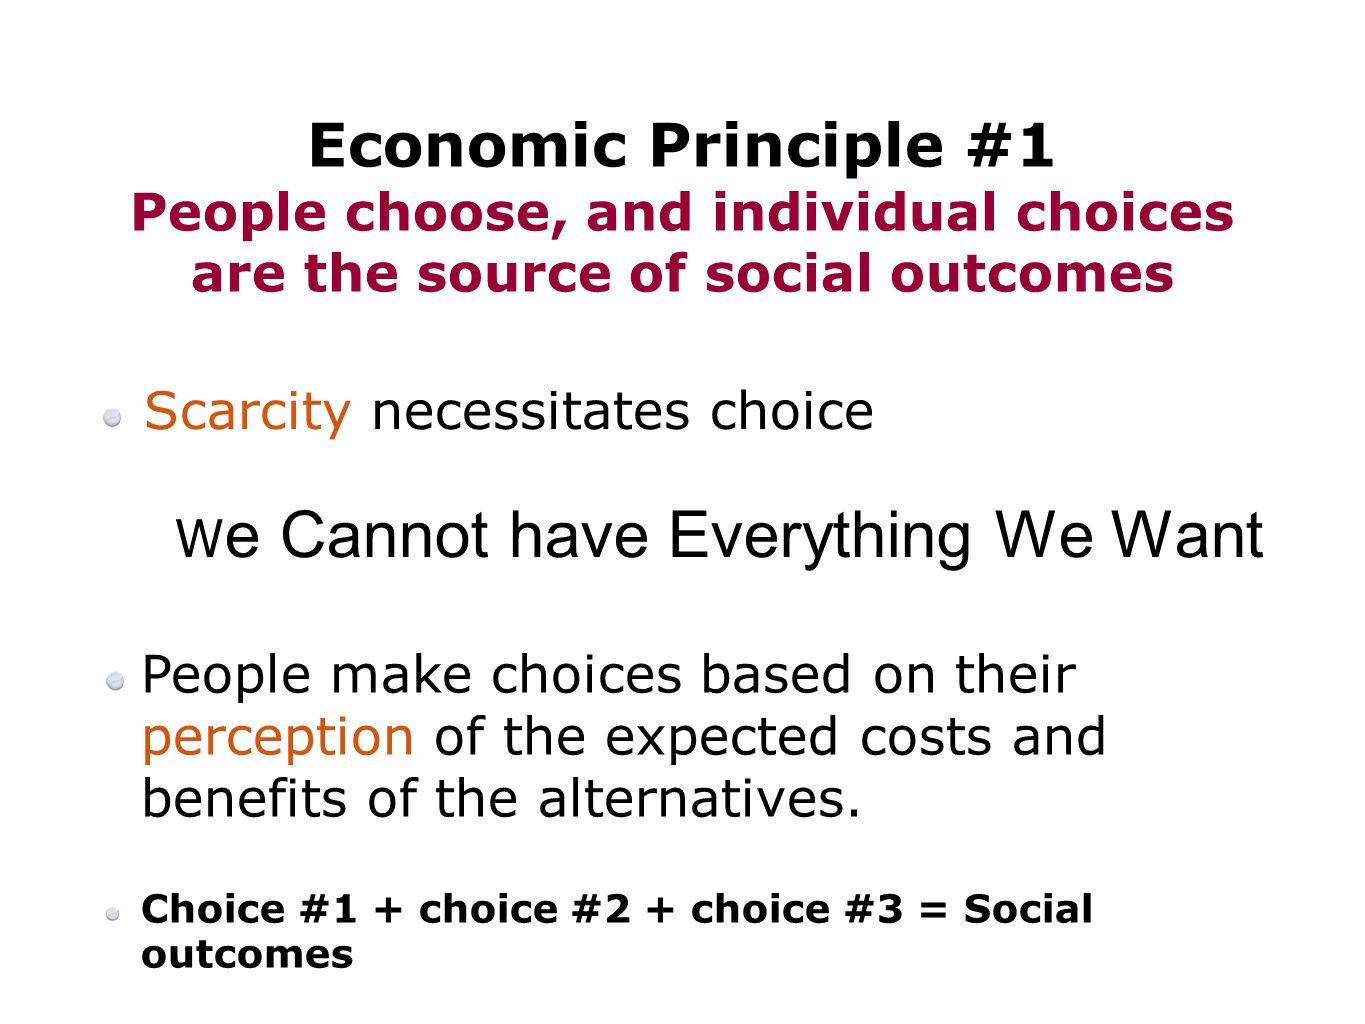 The cost of a choice is the value of the next-best alternative given up, measurable in time or money or some alternative activity given up.